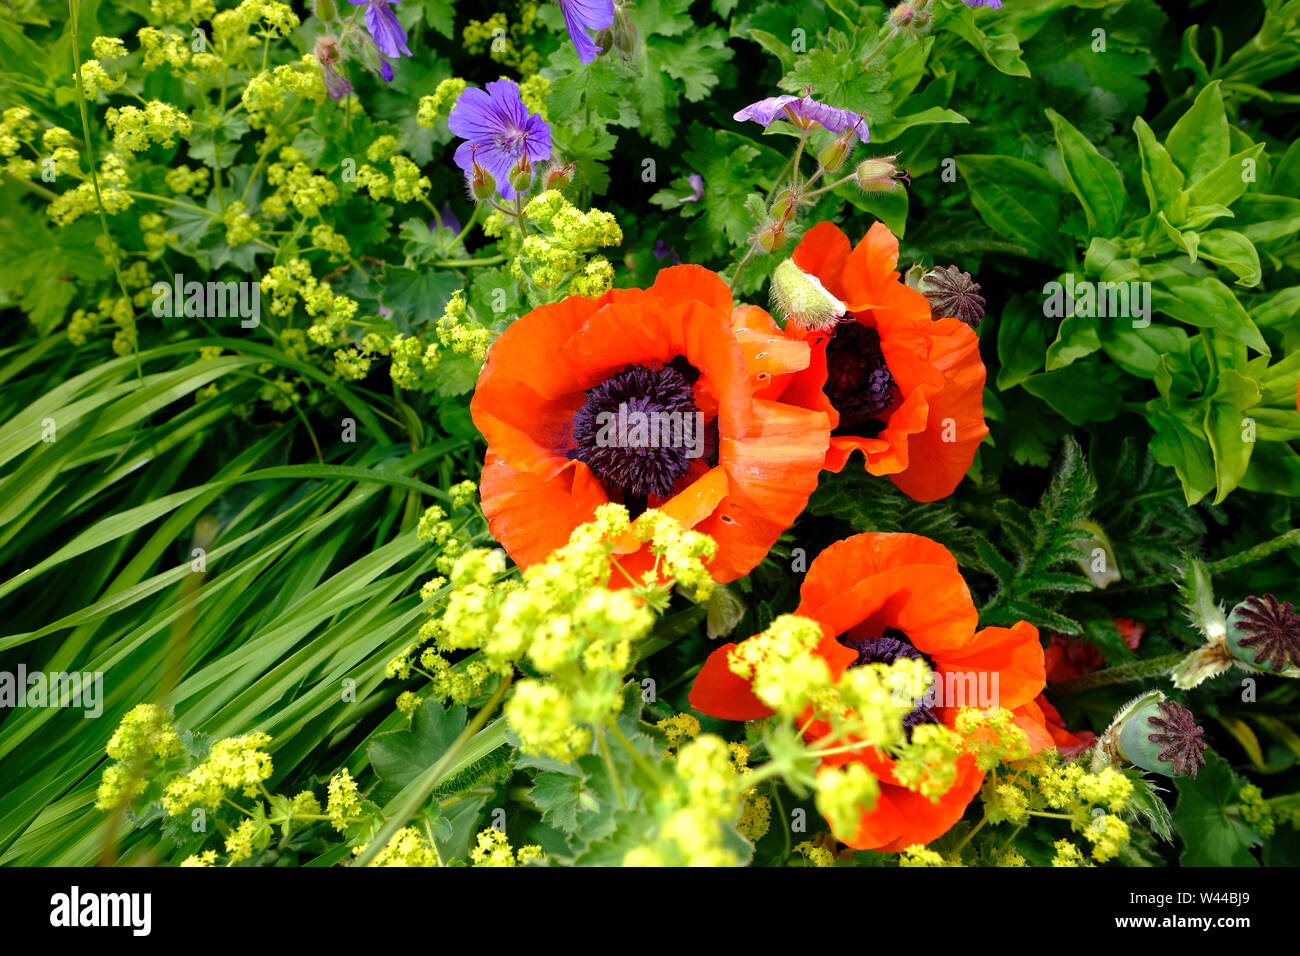 Wild Poppy flowers in the herbaceous border of an English cottage garden Stock Photo